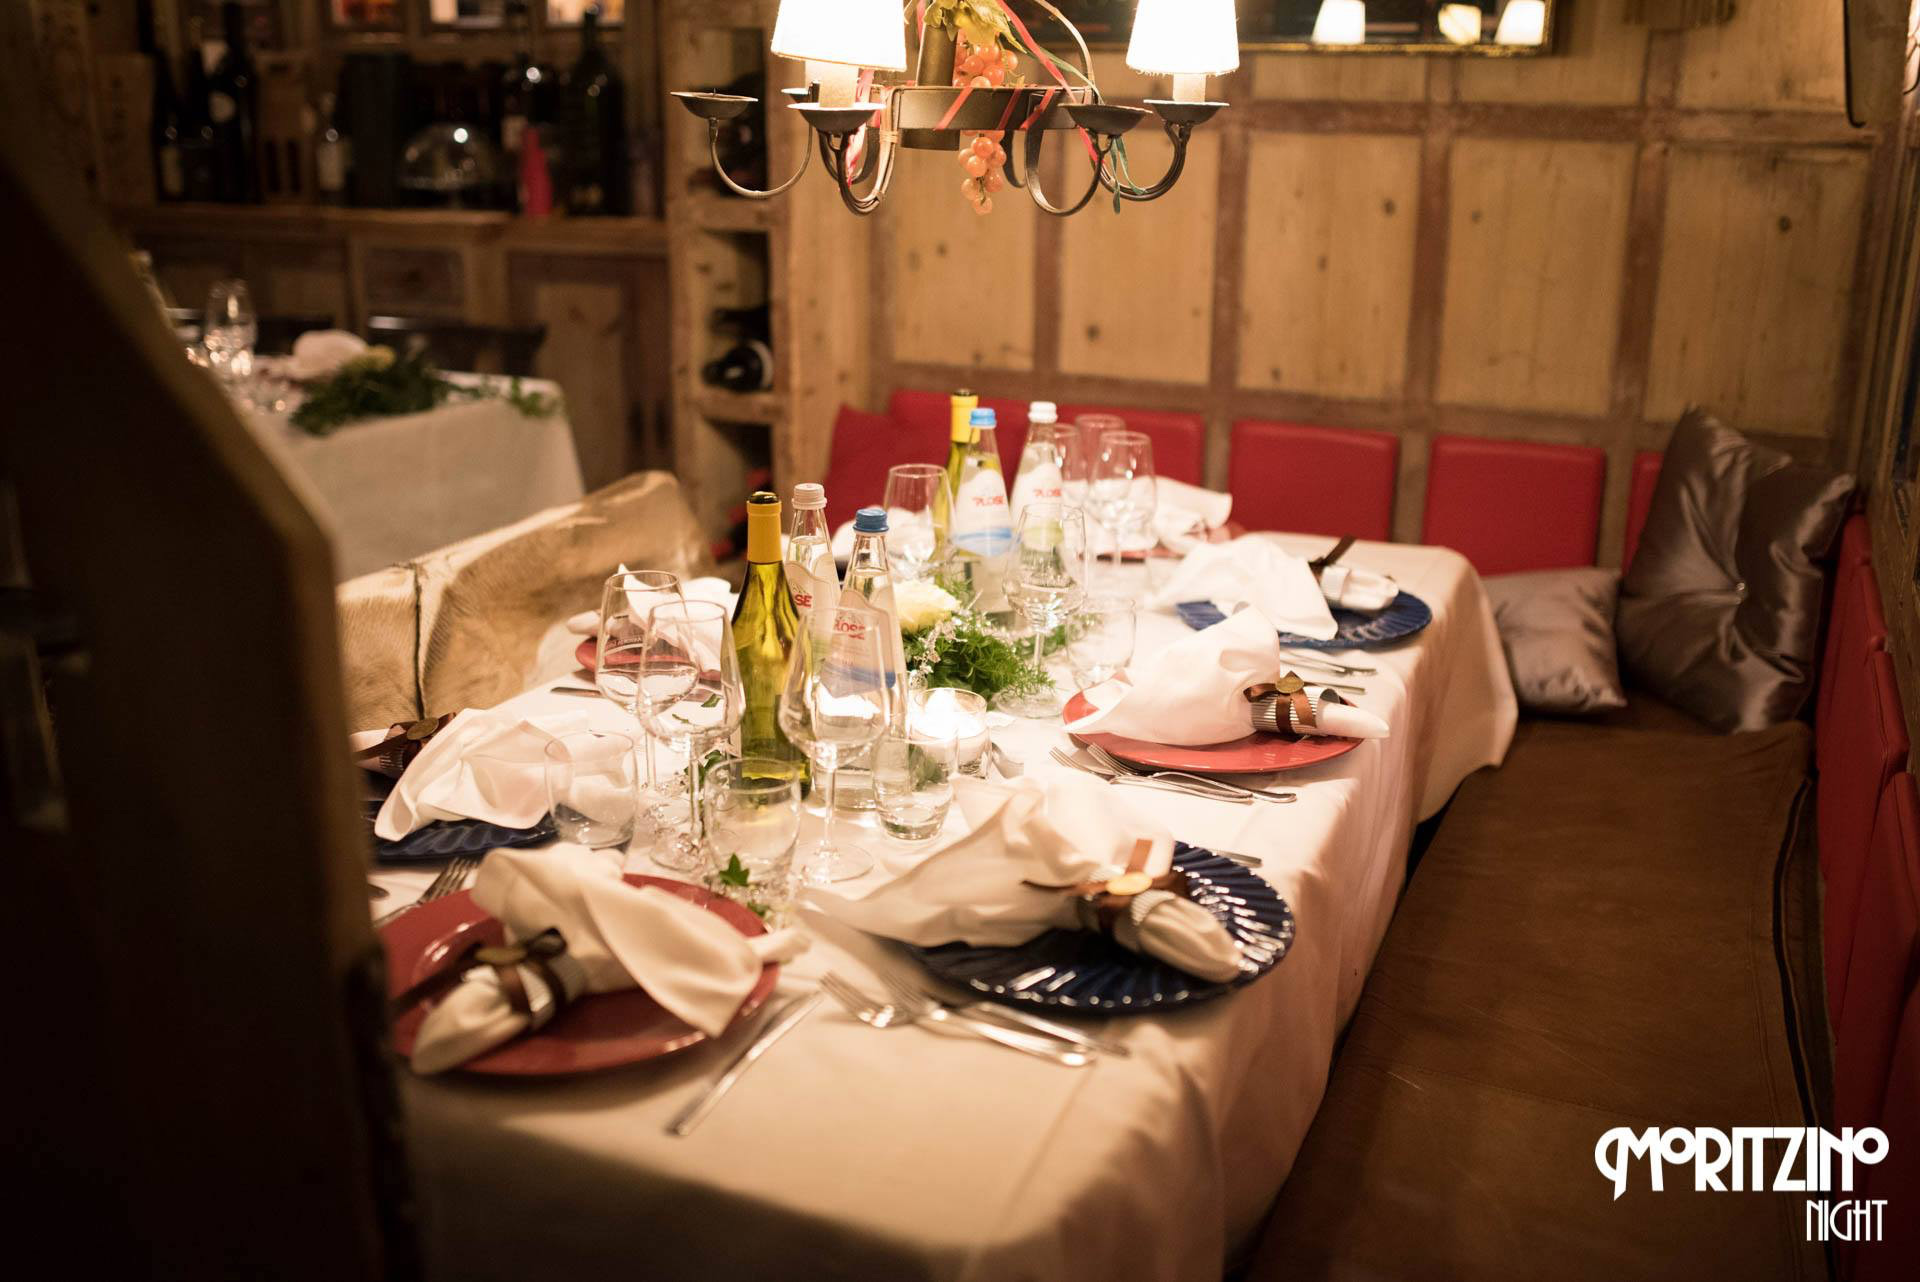 Moritzino night dinner11